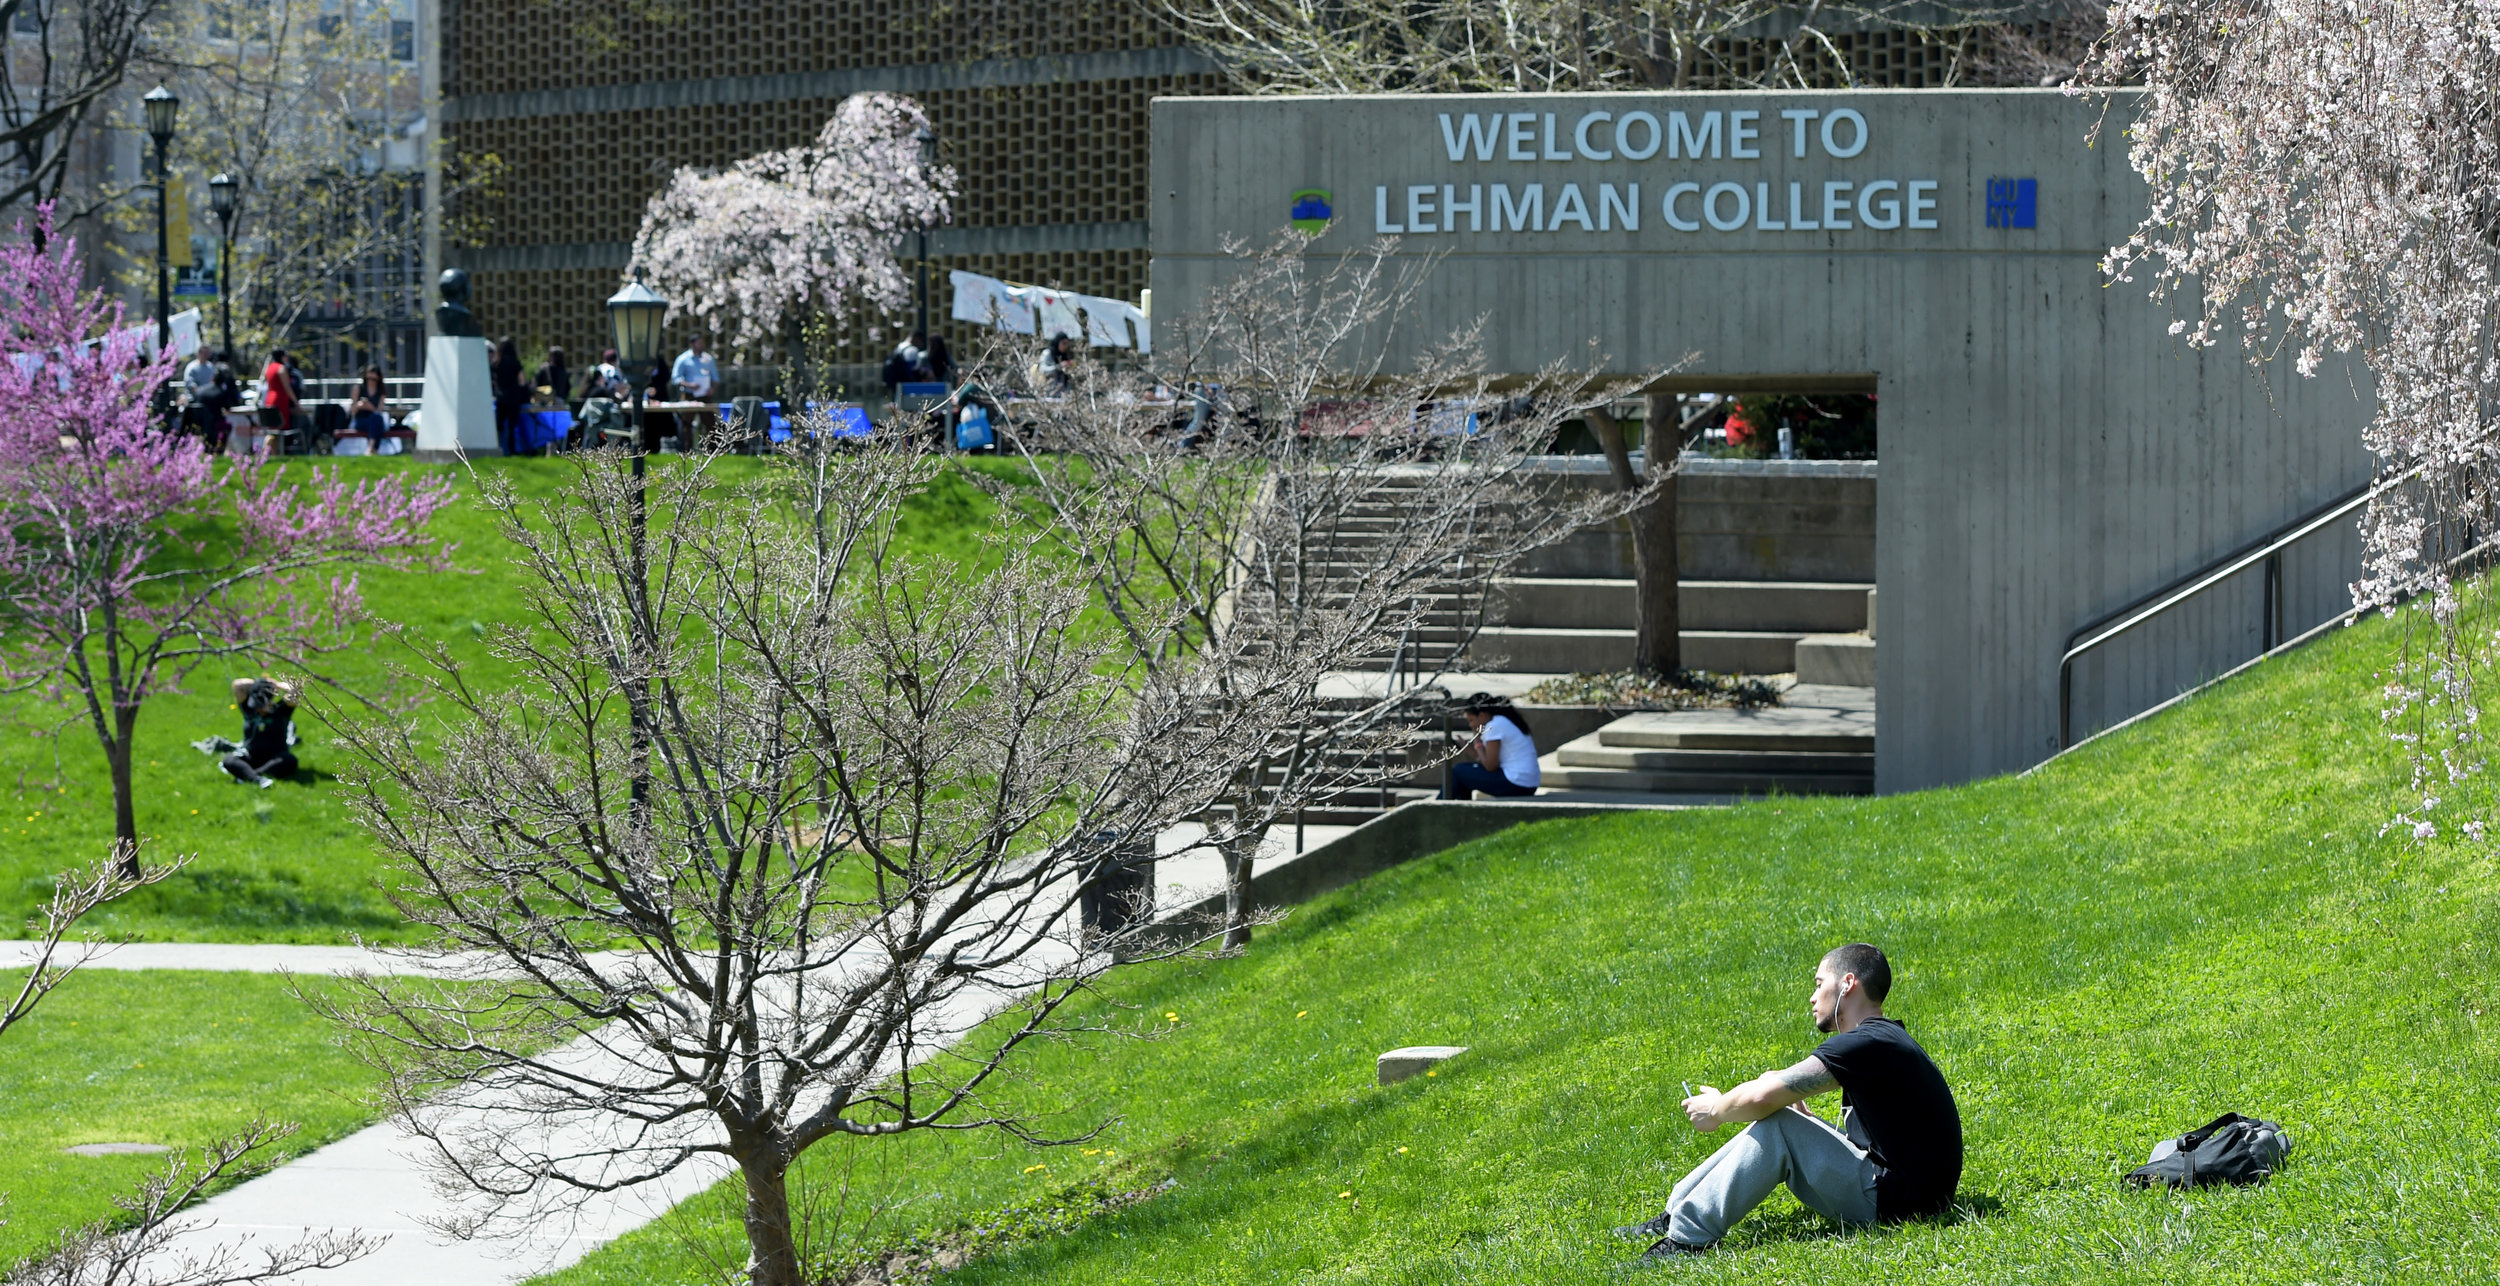 Lehman campus in the spring. Photo courtesy of CUNY.